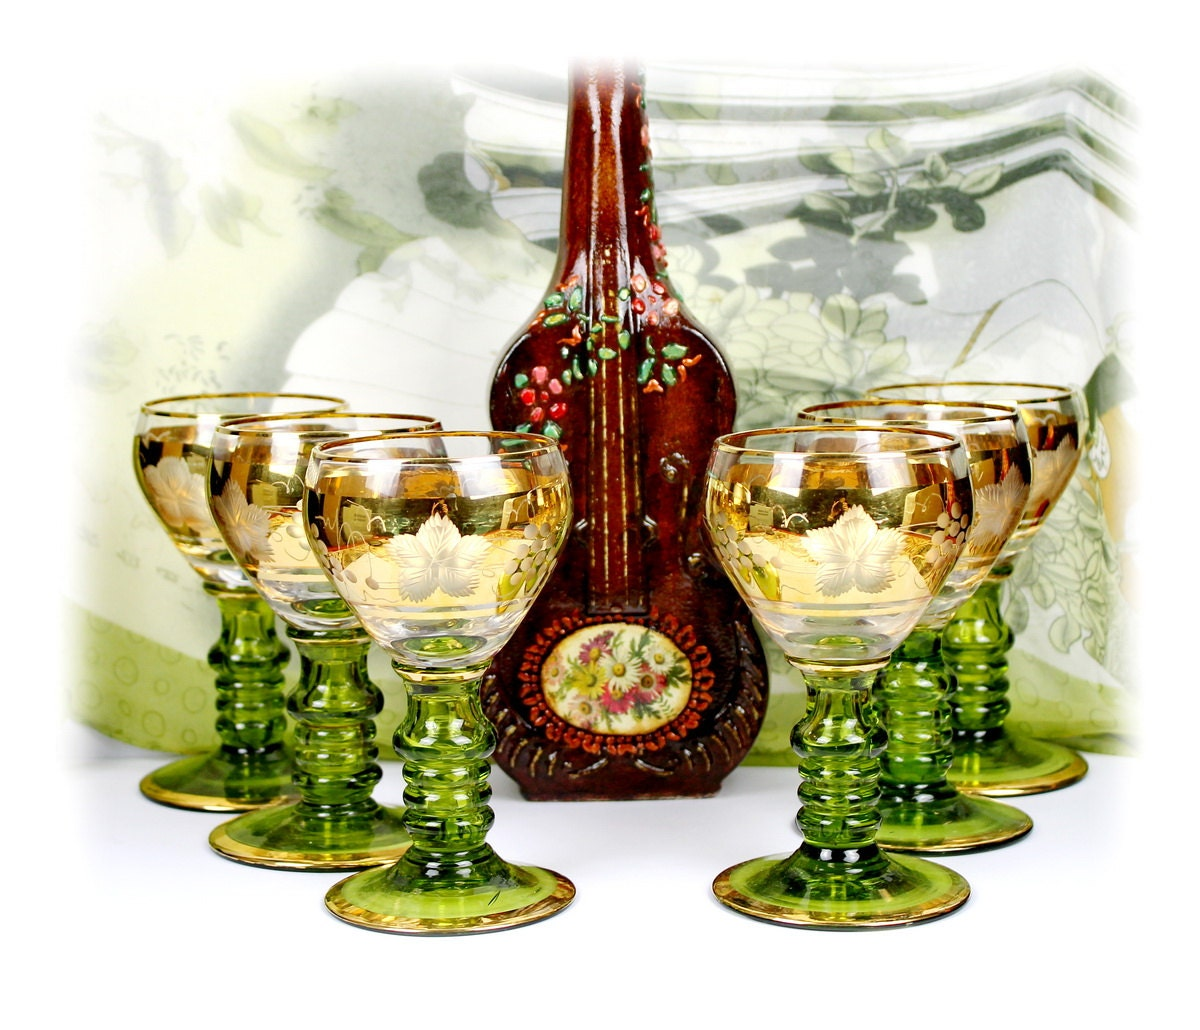 Wedding Gift Ideas Germany : ... Germany, 1970s, Mid Century Barware, Gold Barware, Gift Ideas, Wedding